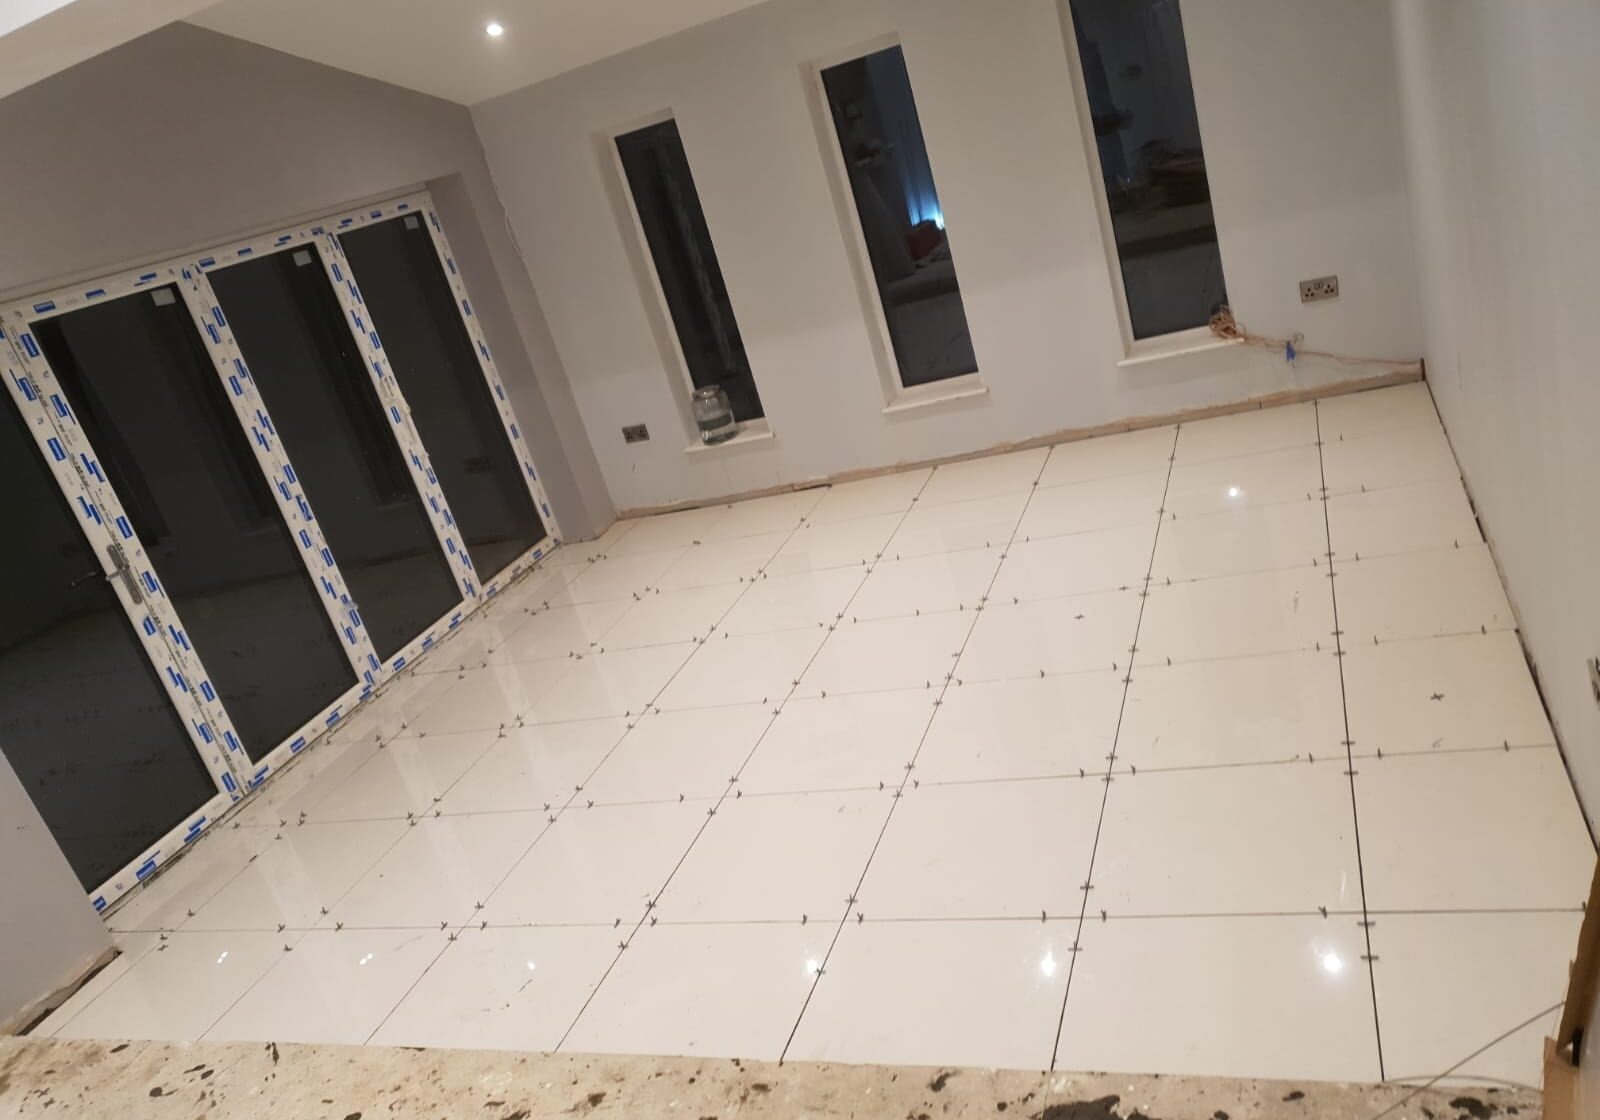 Tiled flooring in house extension built in Barnsley